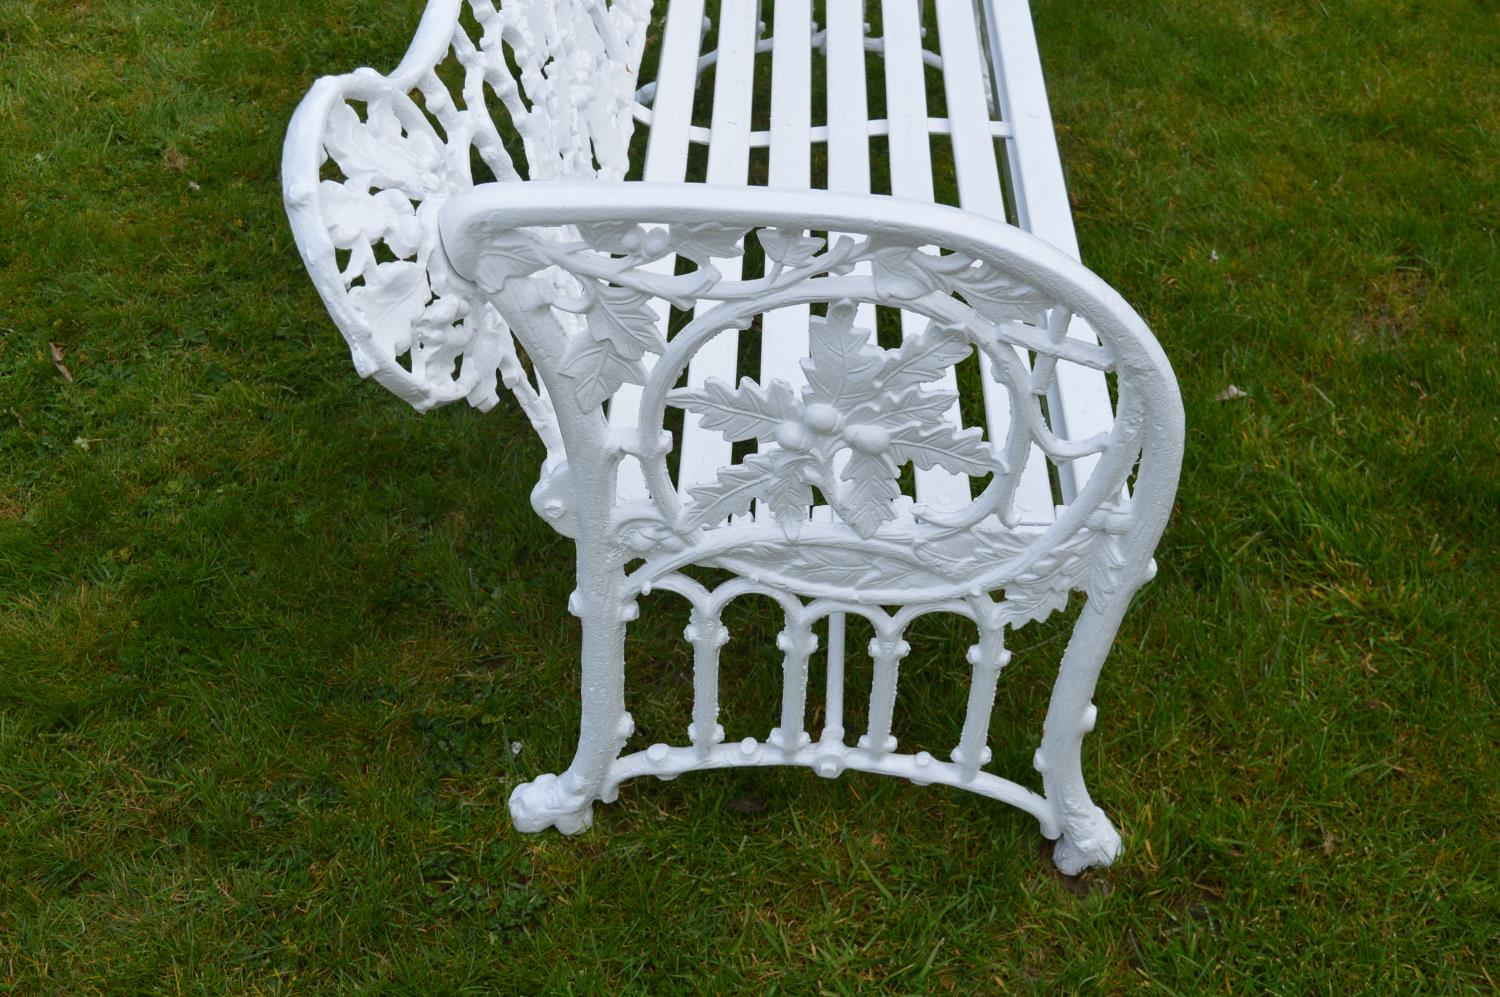 Cast iron garden bench. - Image 2 of 3